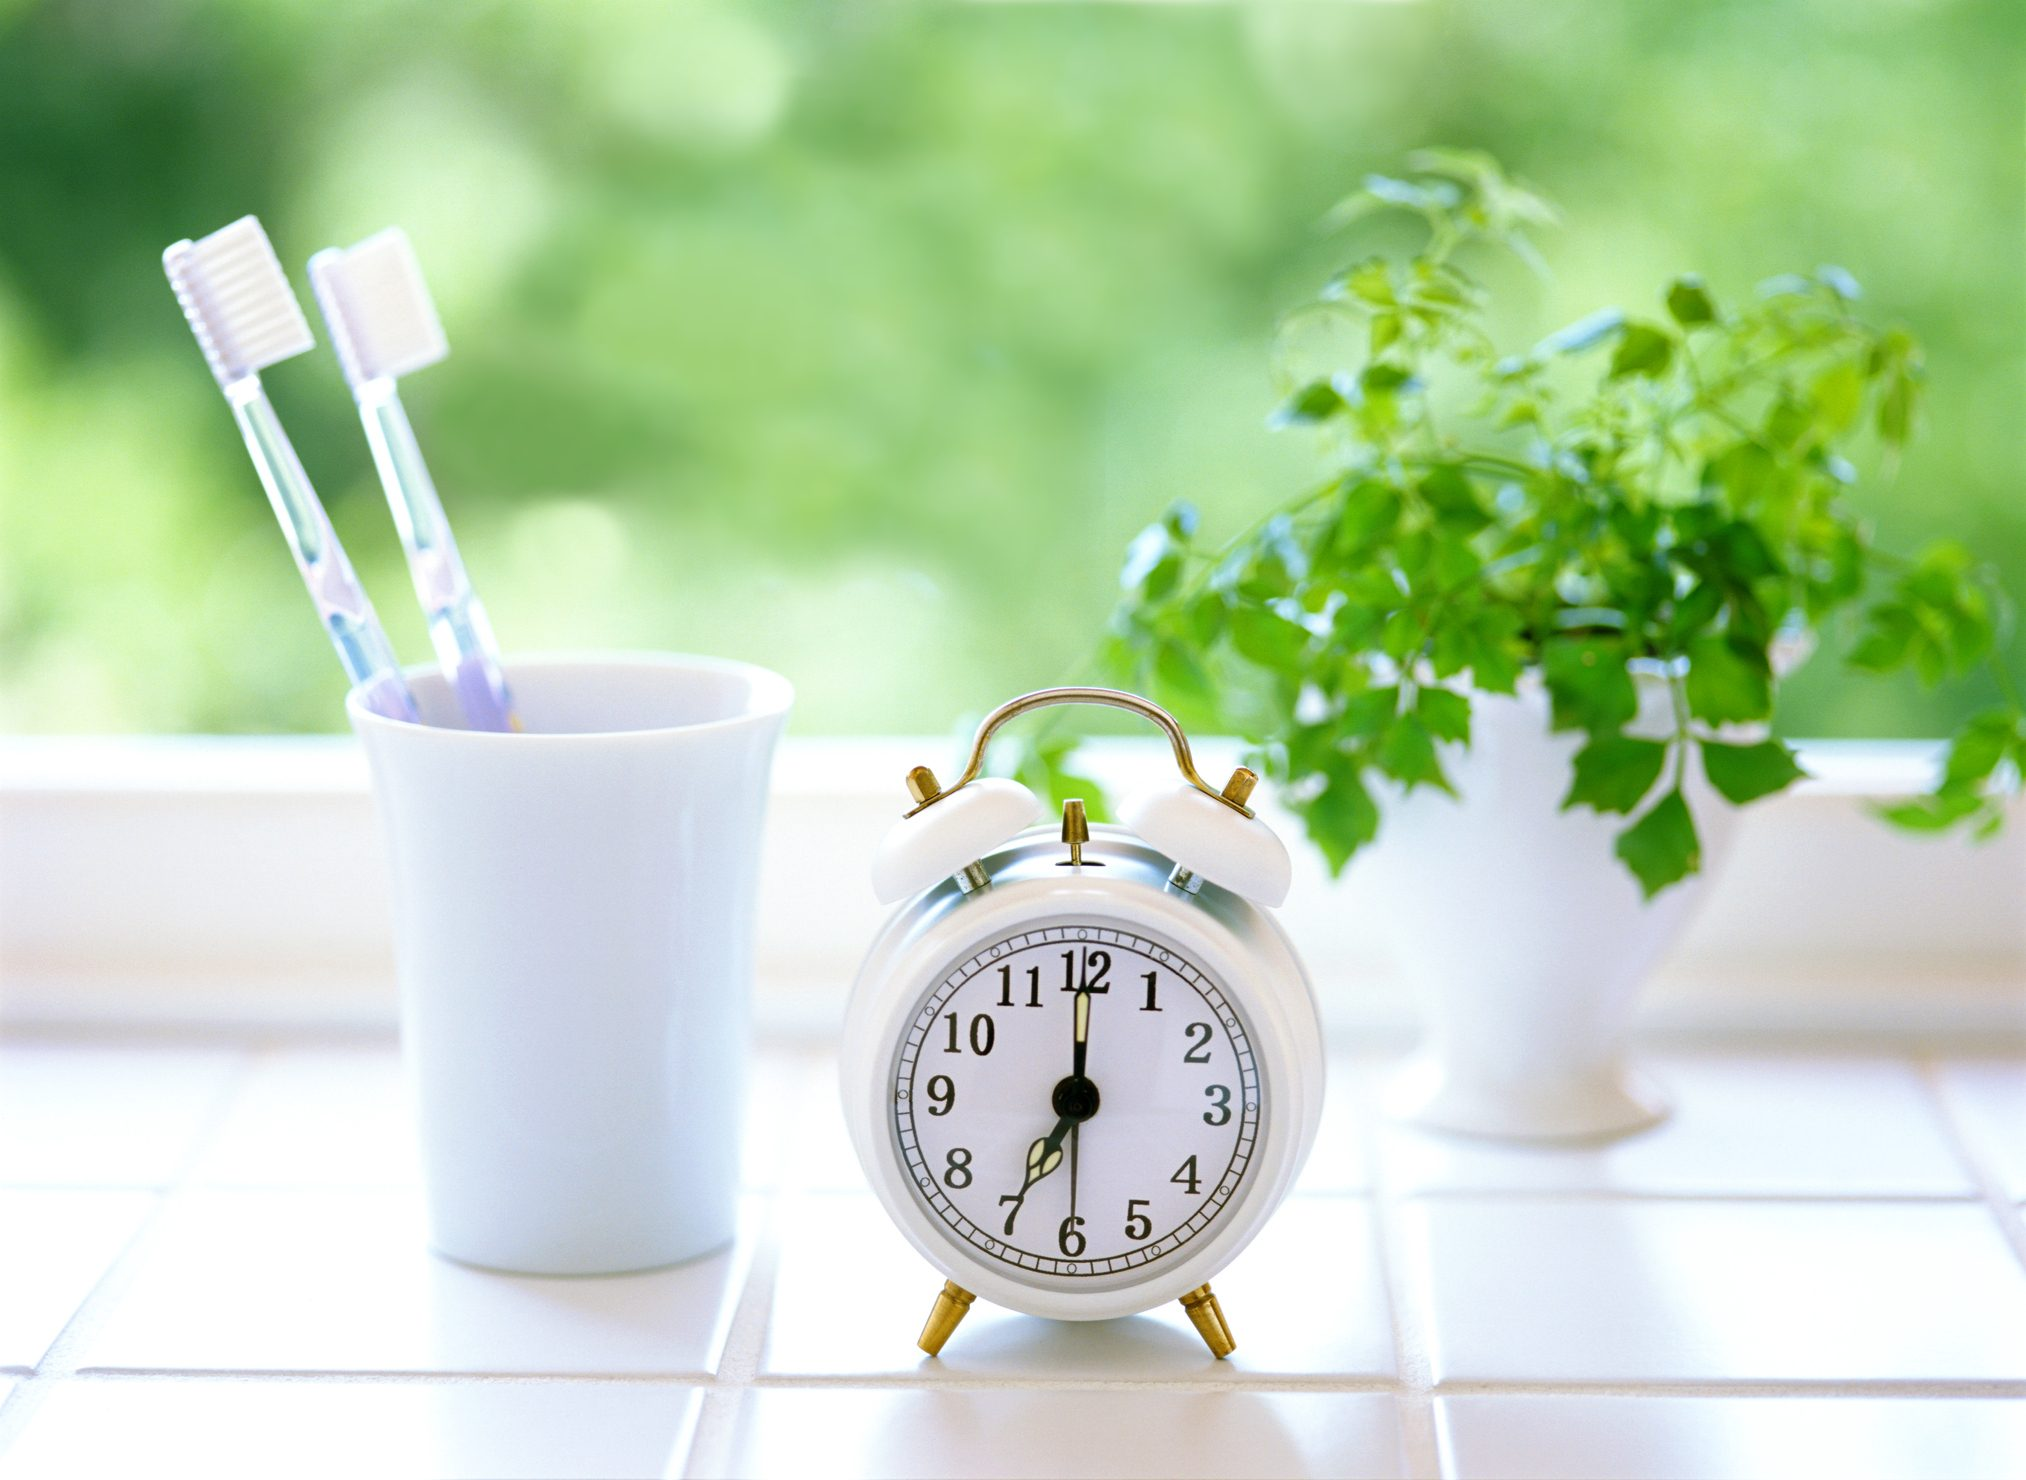 alarm clock and toothbrushes